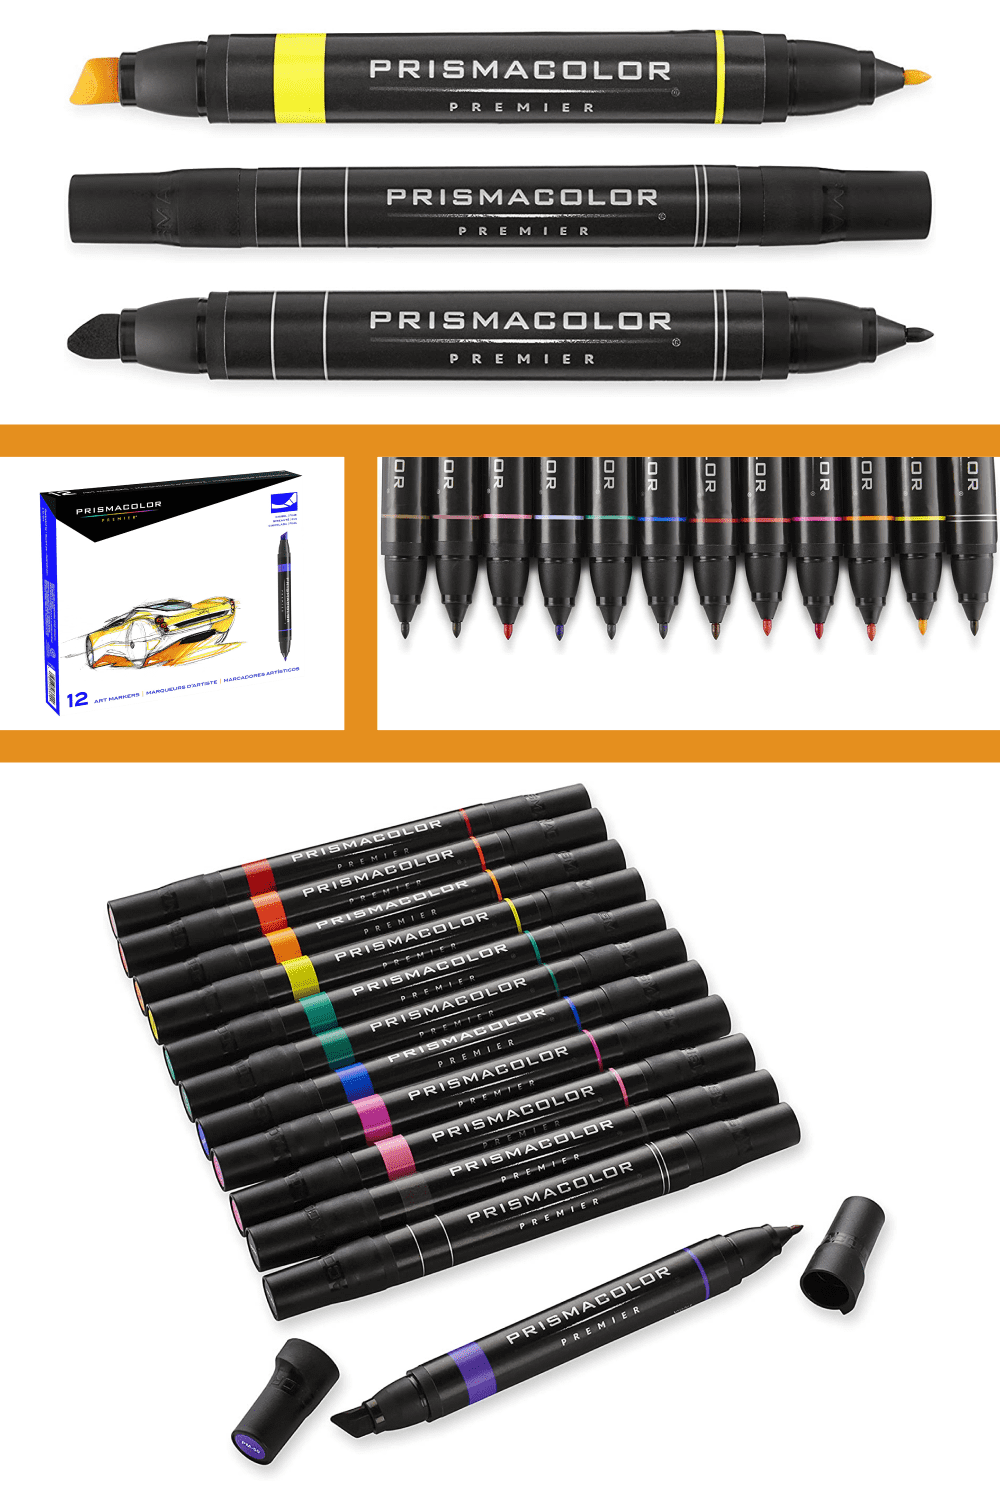 This product is best for art and craft use and is made of highly durable products.